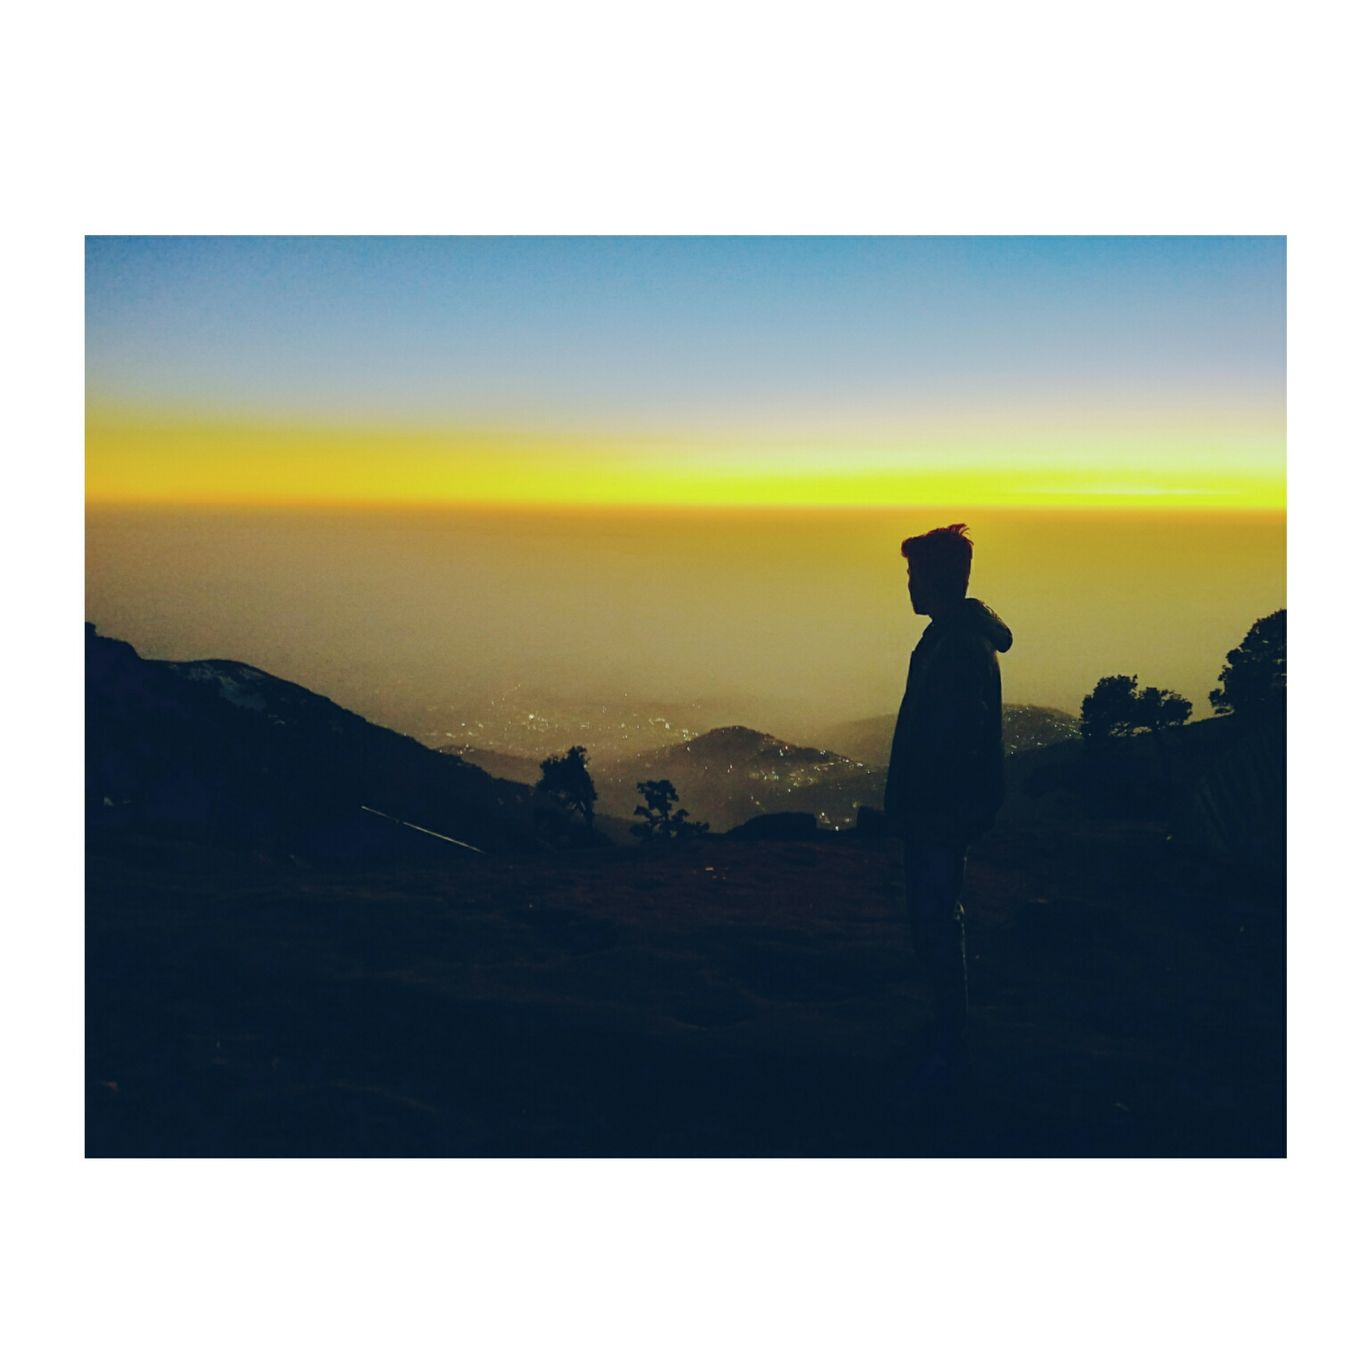 Photo of Triund By Aakash chaudhary